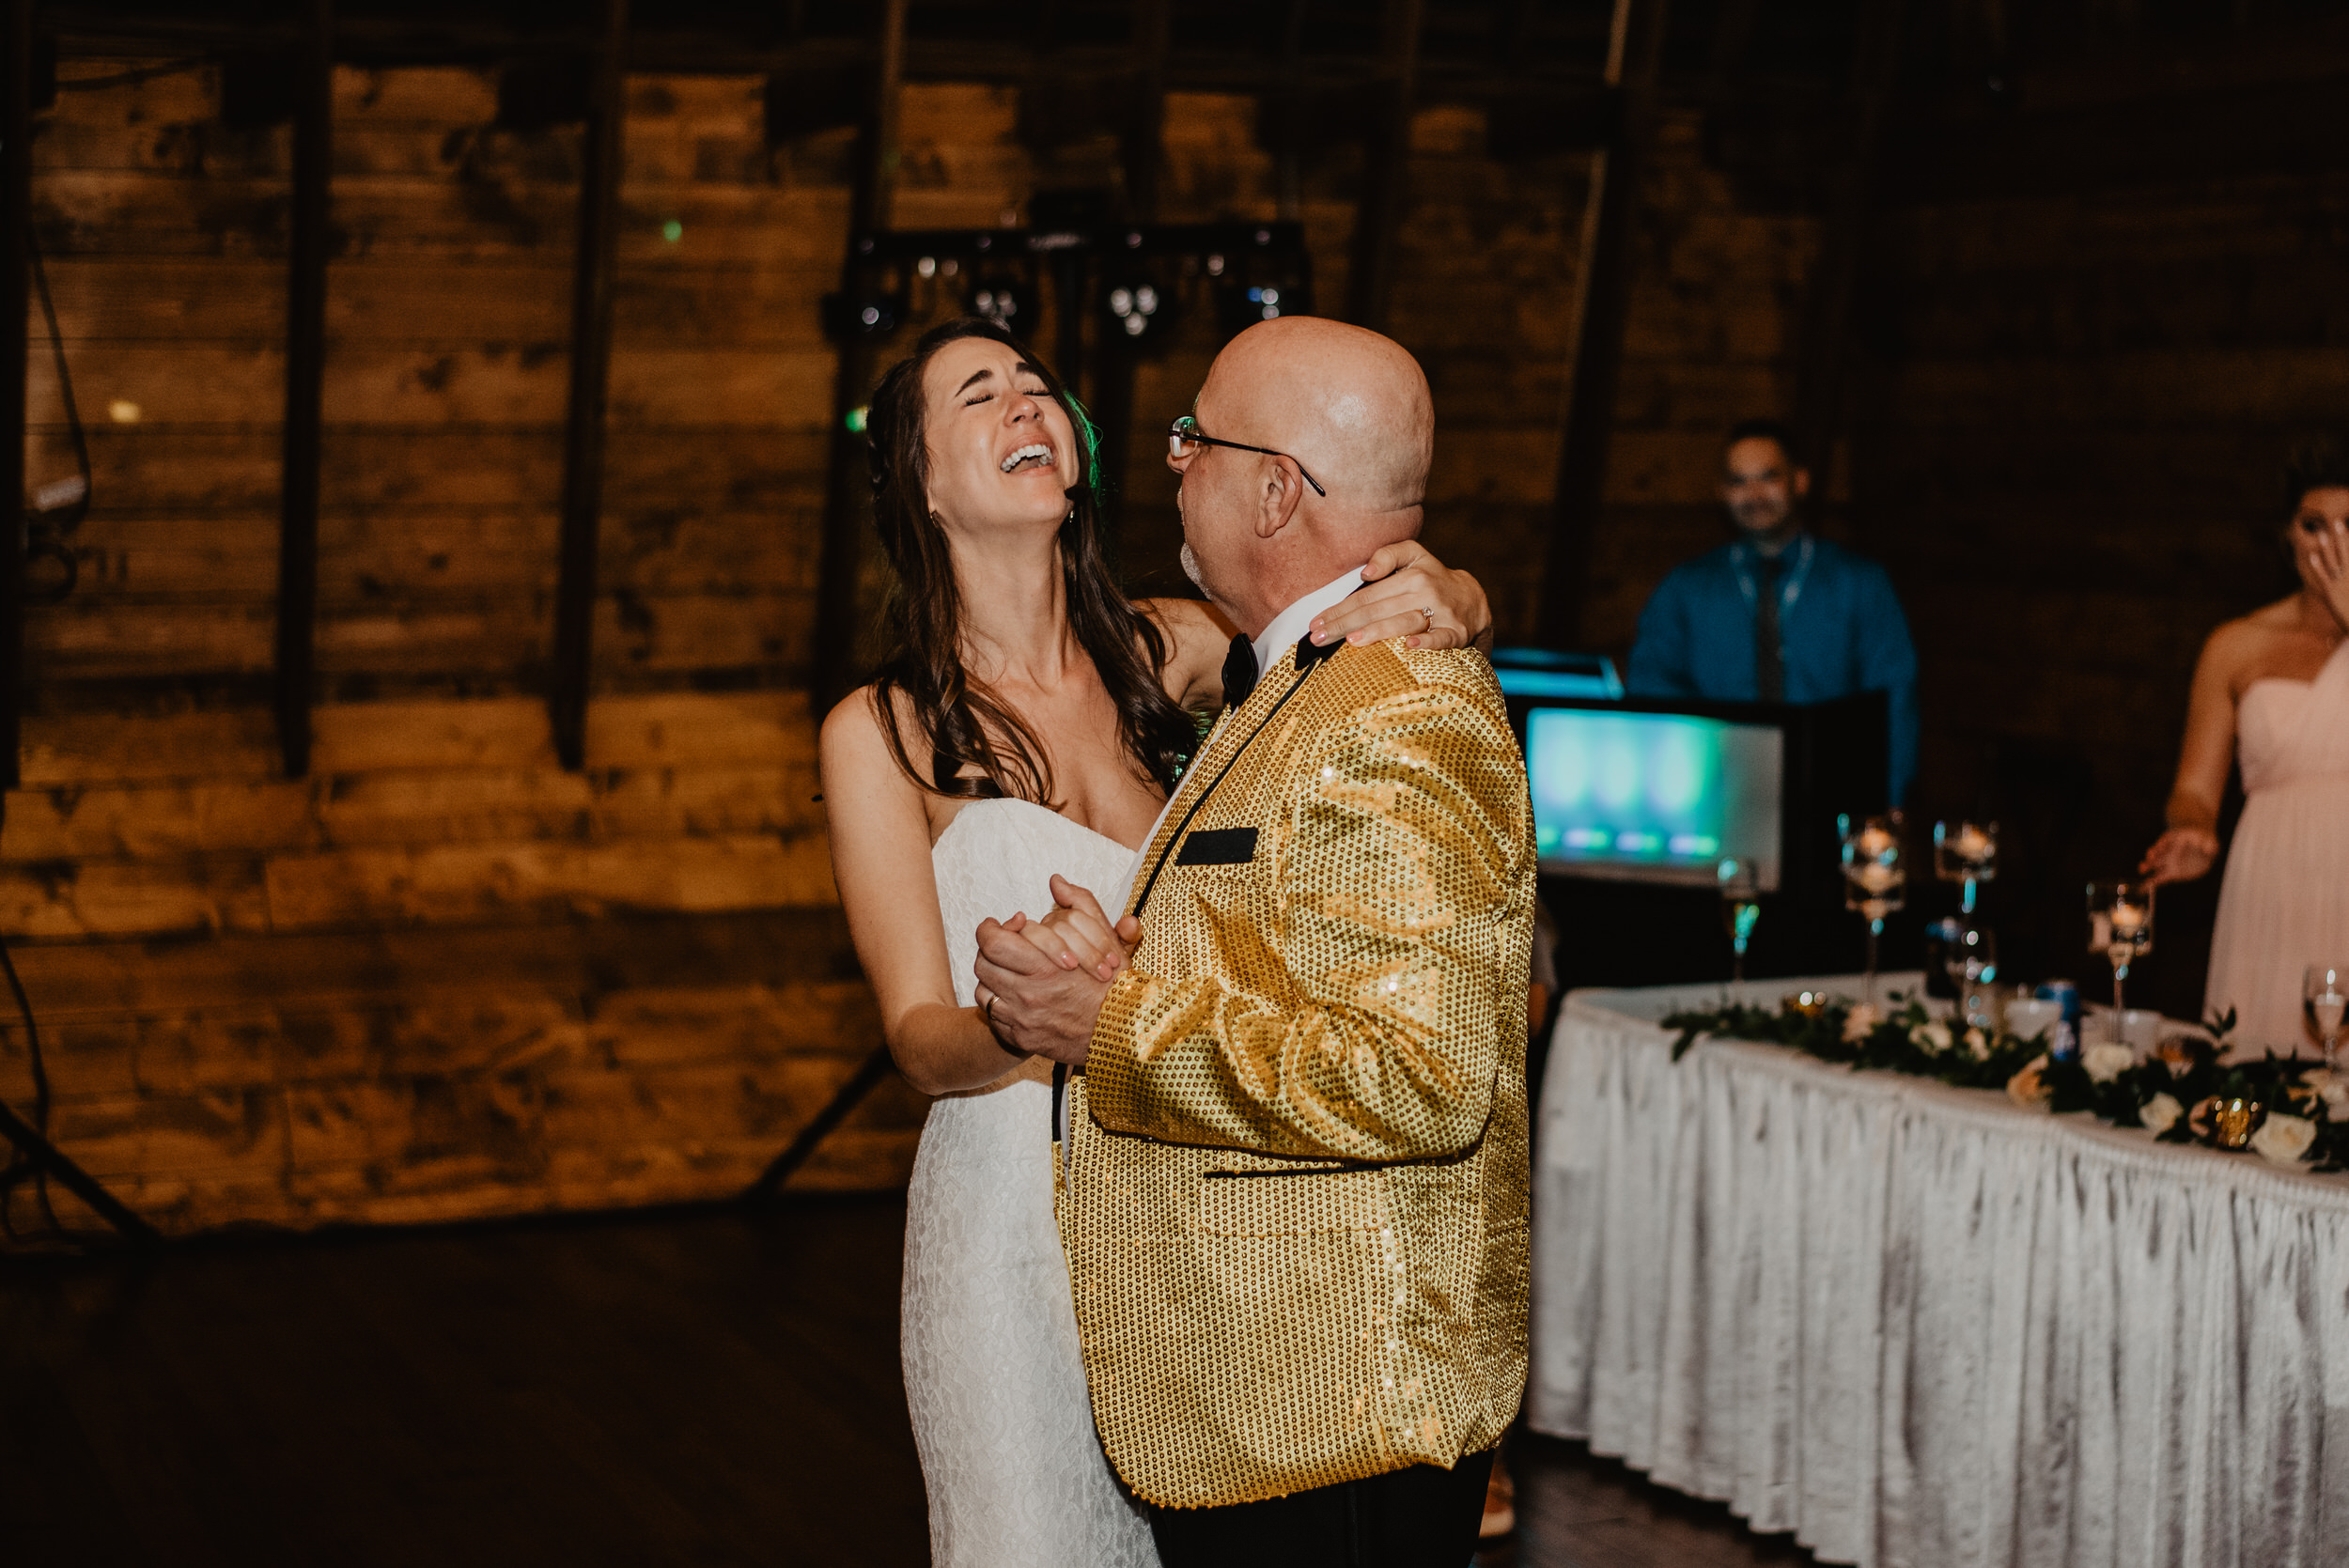 The Barn at the Ackerhurst Dairy Farm Omaha Nebraska Wedding Kaylie Sirek Photography125.jpg